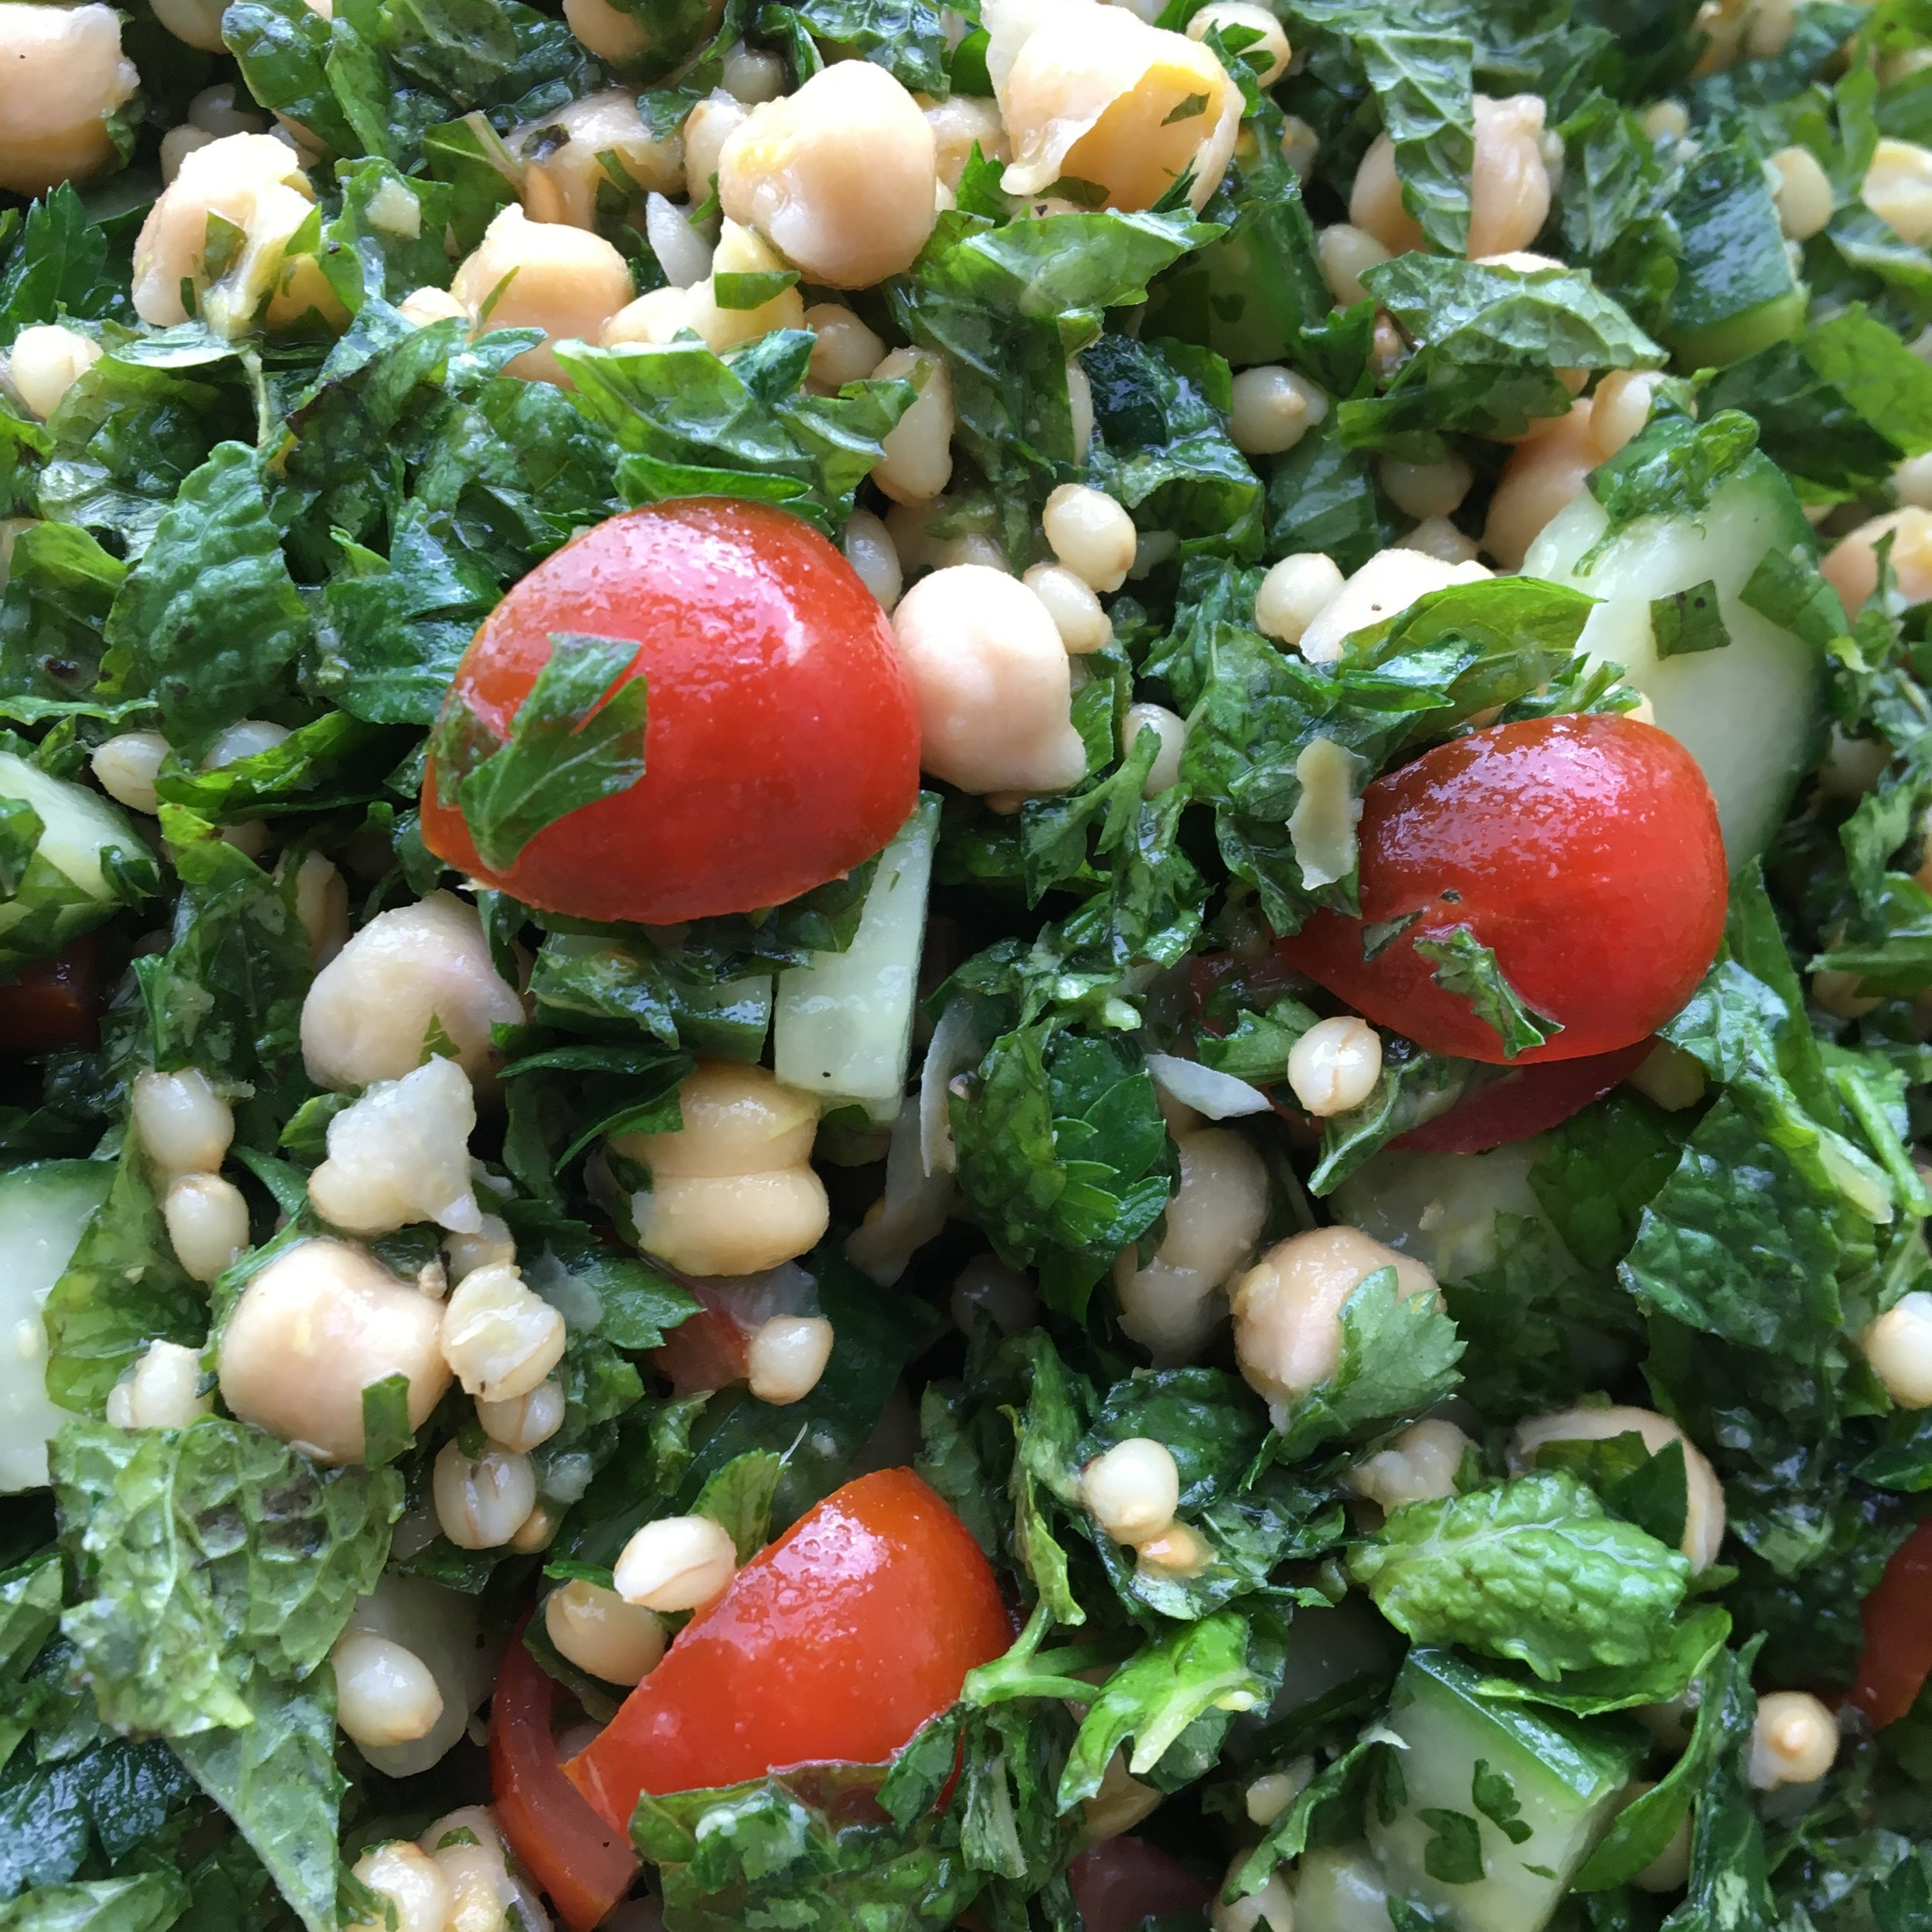 Herb Salad with Beans or Peas